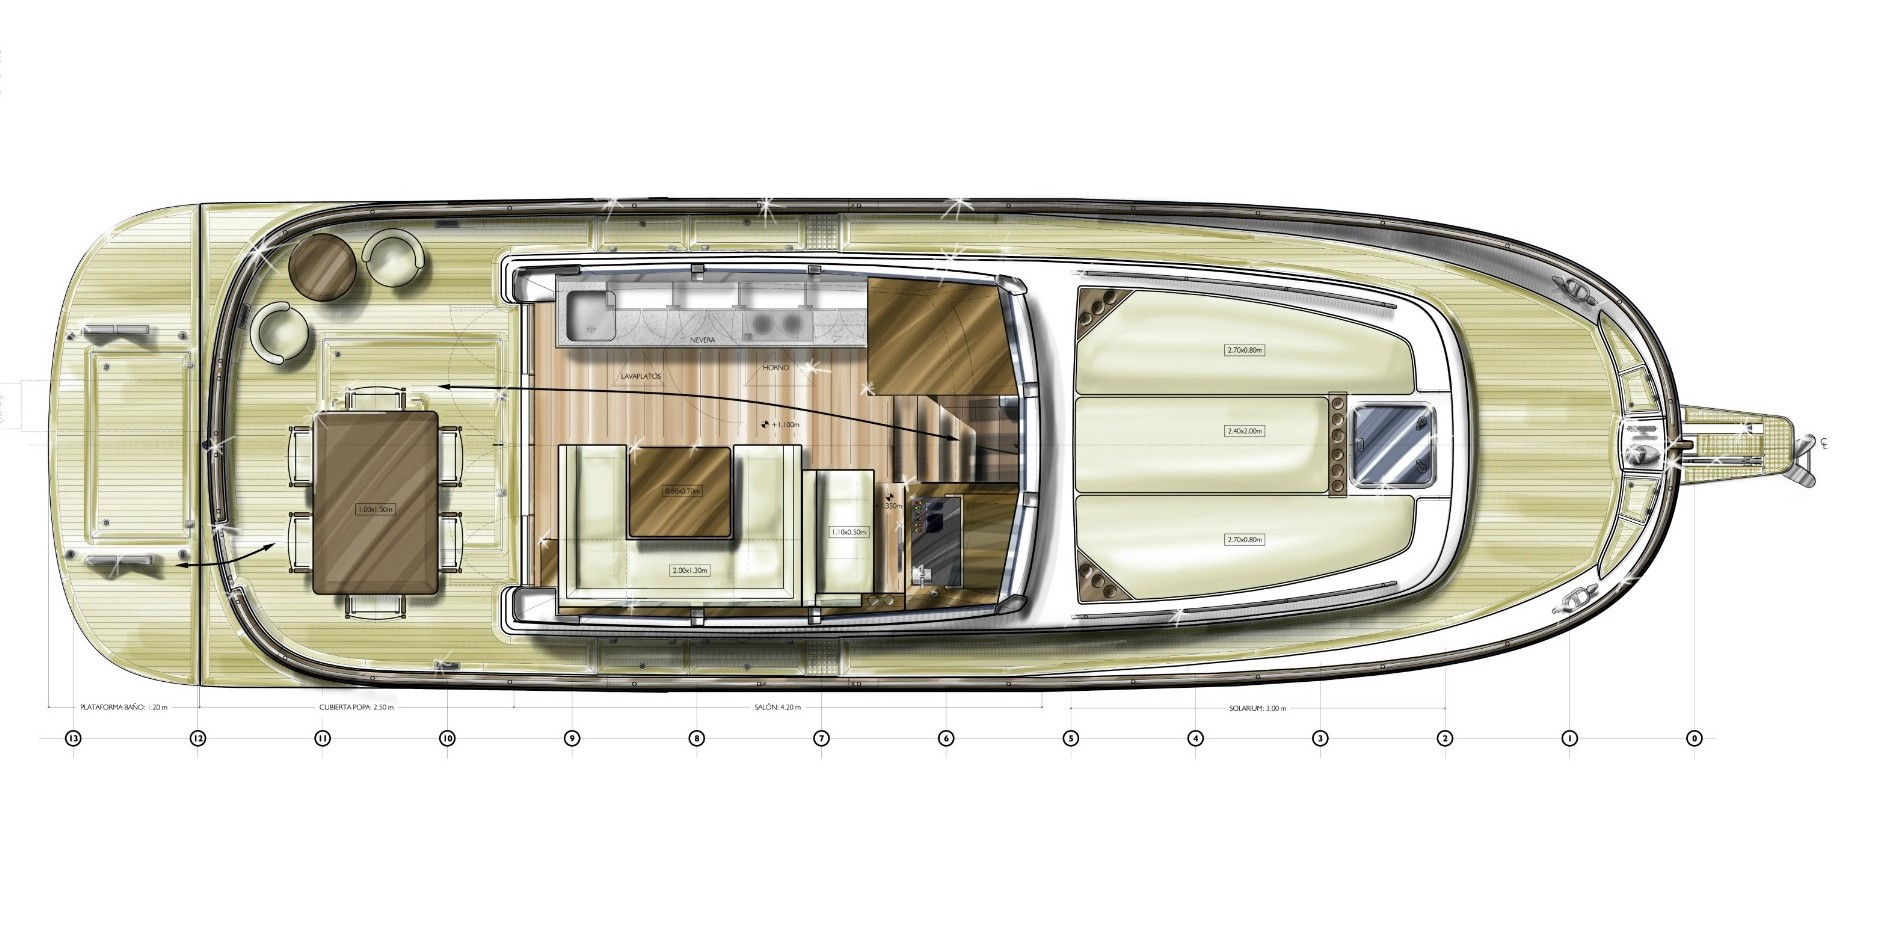 Minorca Islander 42 Flybridge - layout optional galley